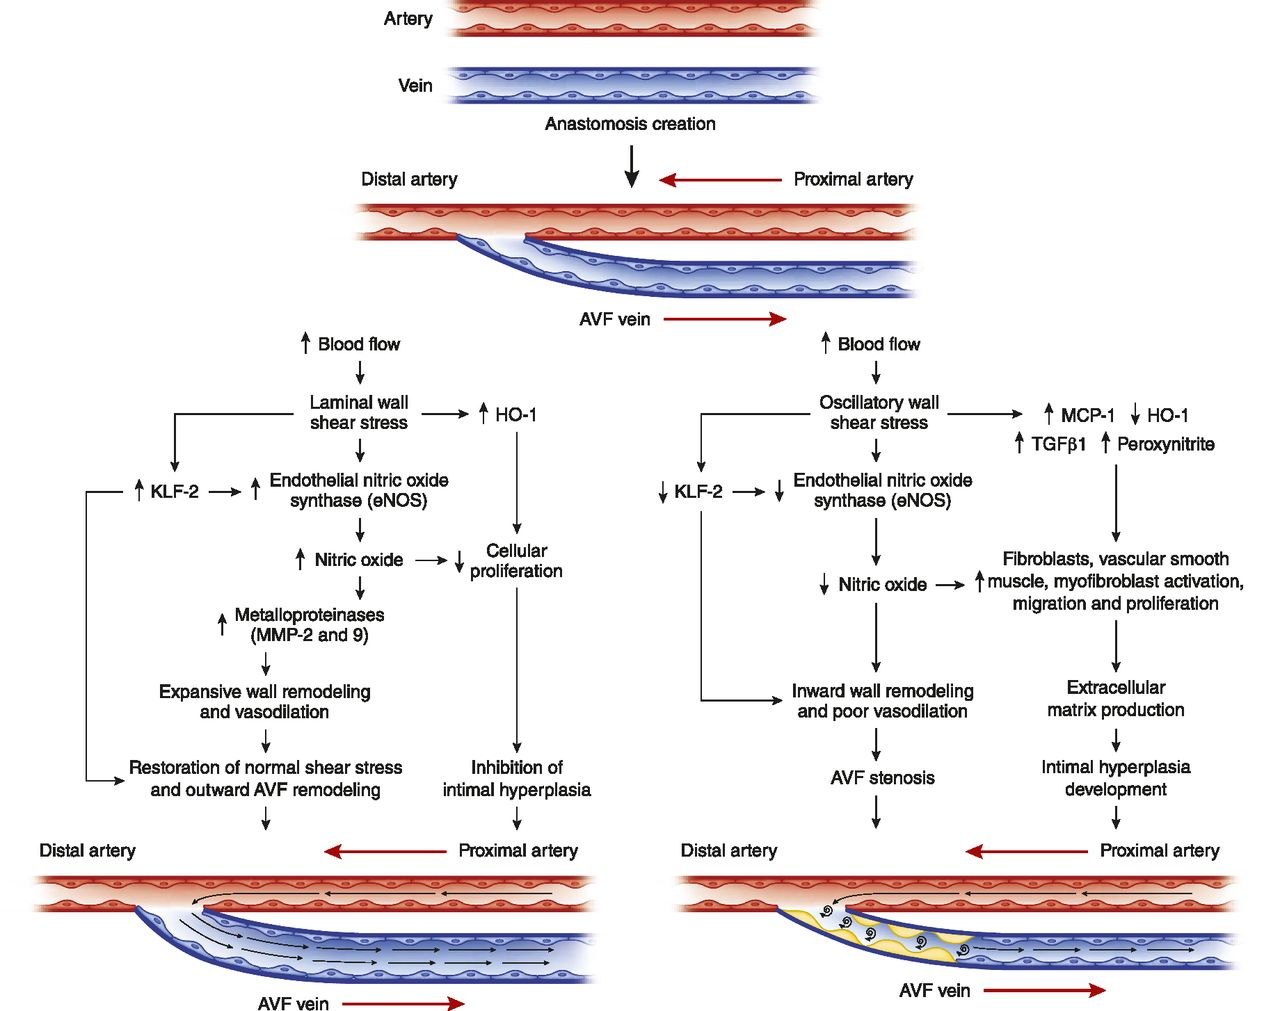 New Insights into Dialysis Vascular Access: Molecular Targets in ...